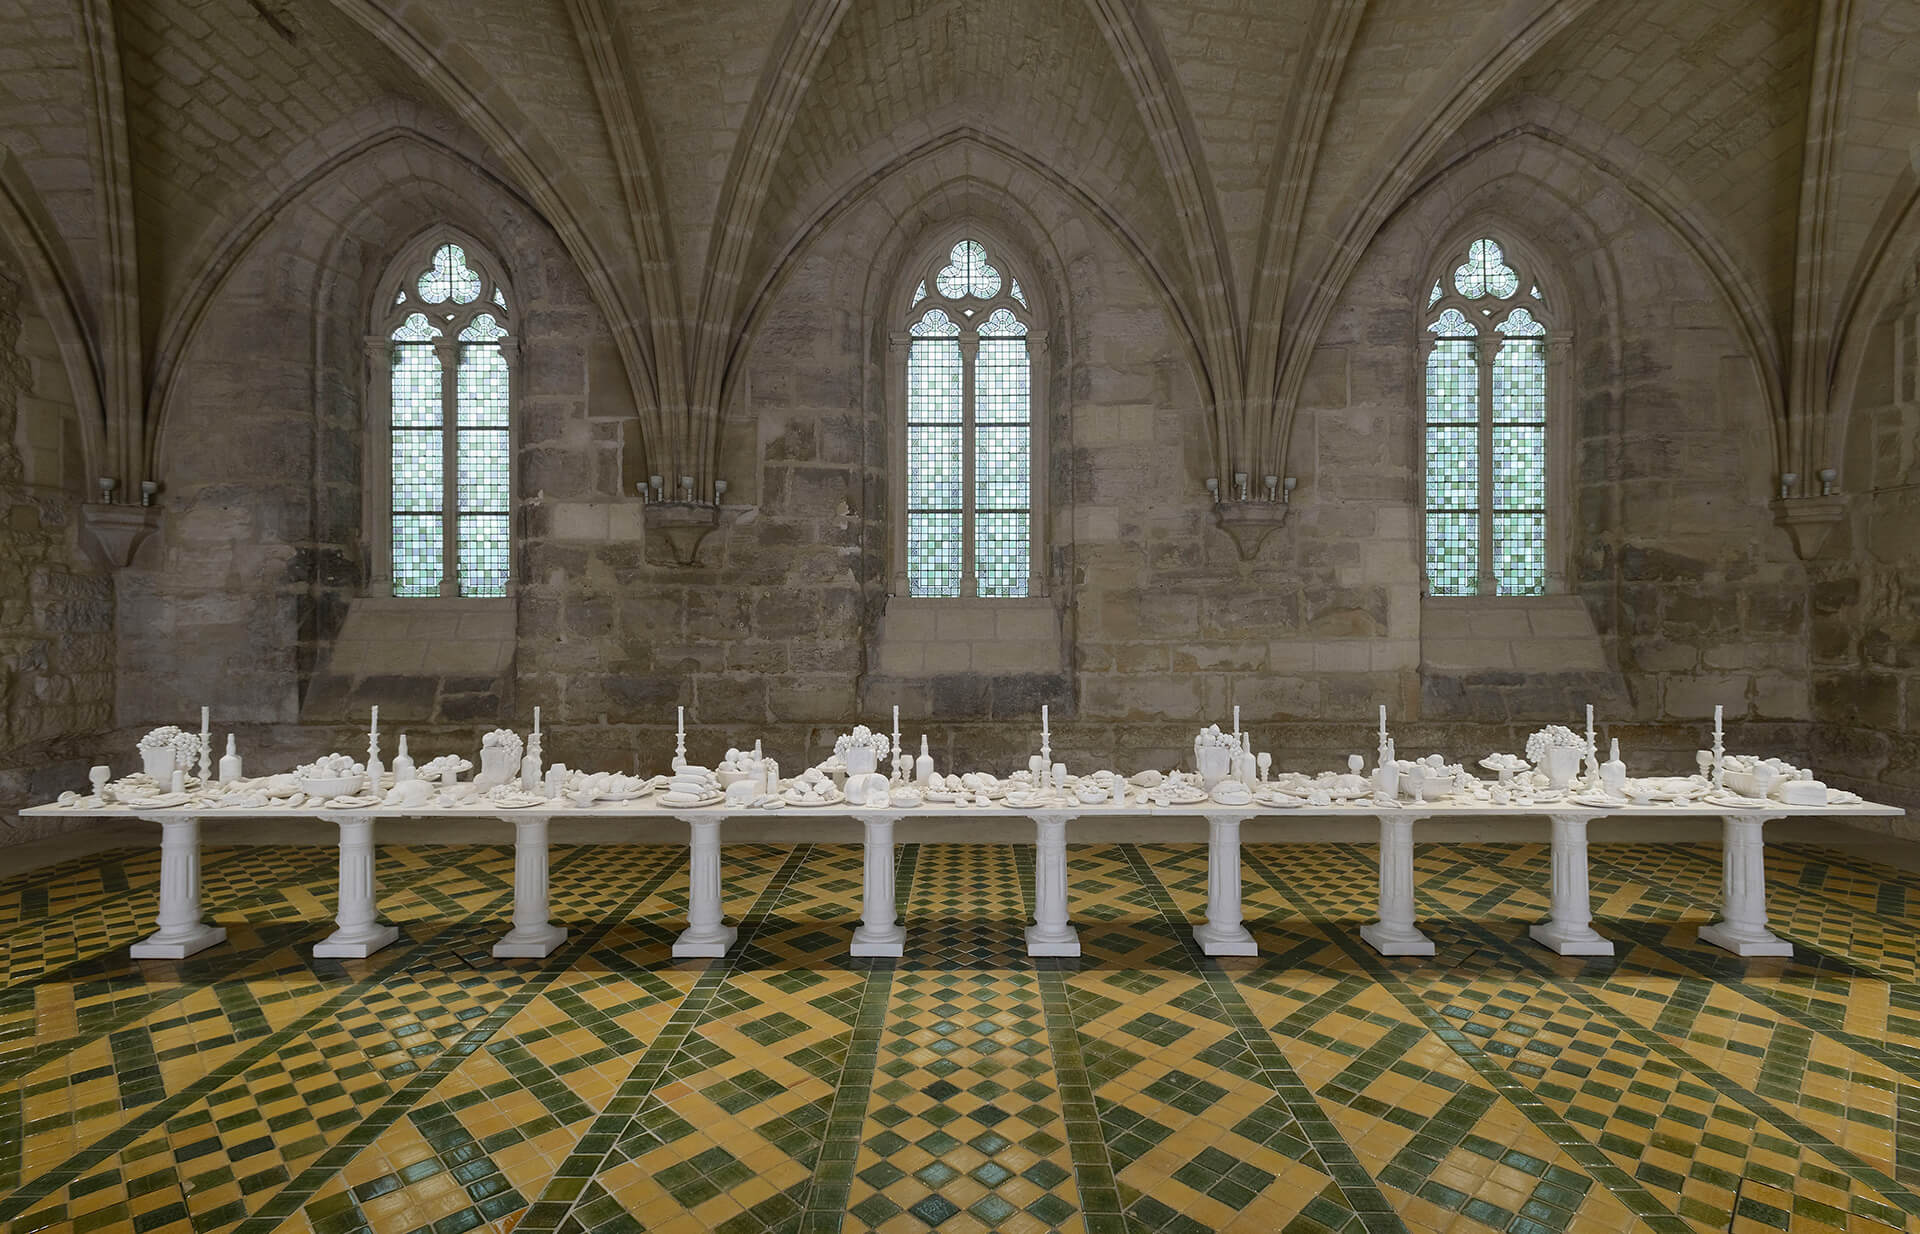 'The Last Supper' (2014) on view at Abbaye de Maubuisson in France | The Last Supper (2014) | Ken + Julia Yonetani | STIRworld